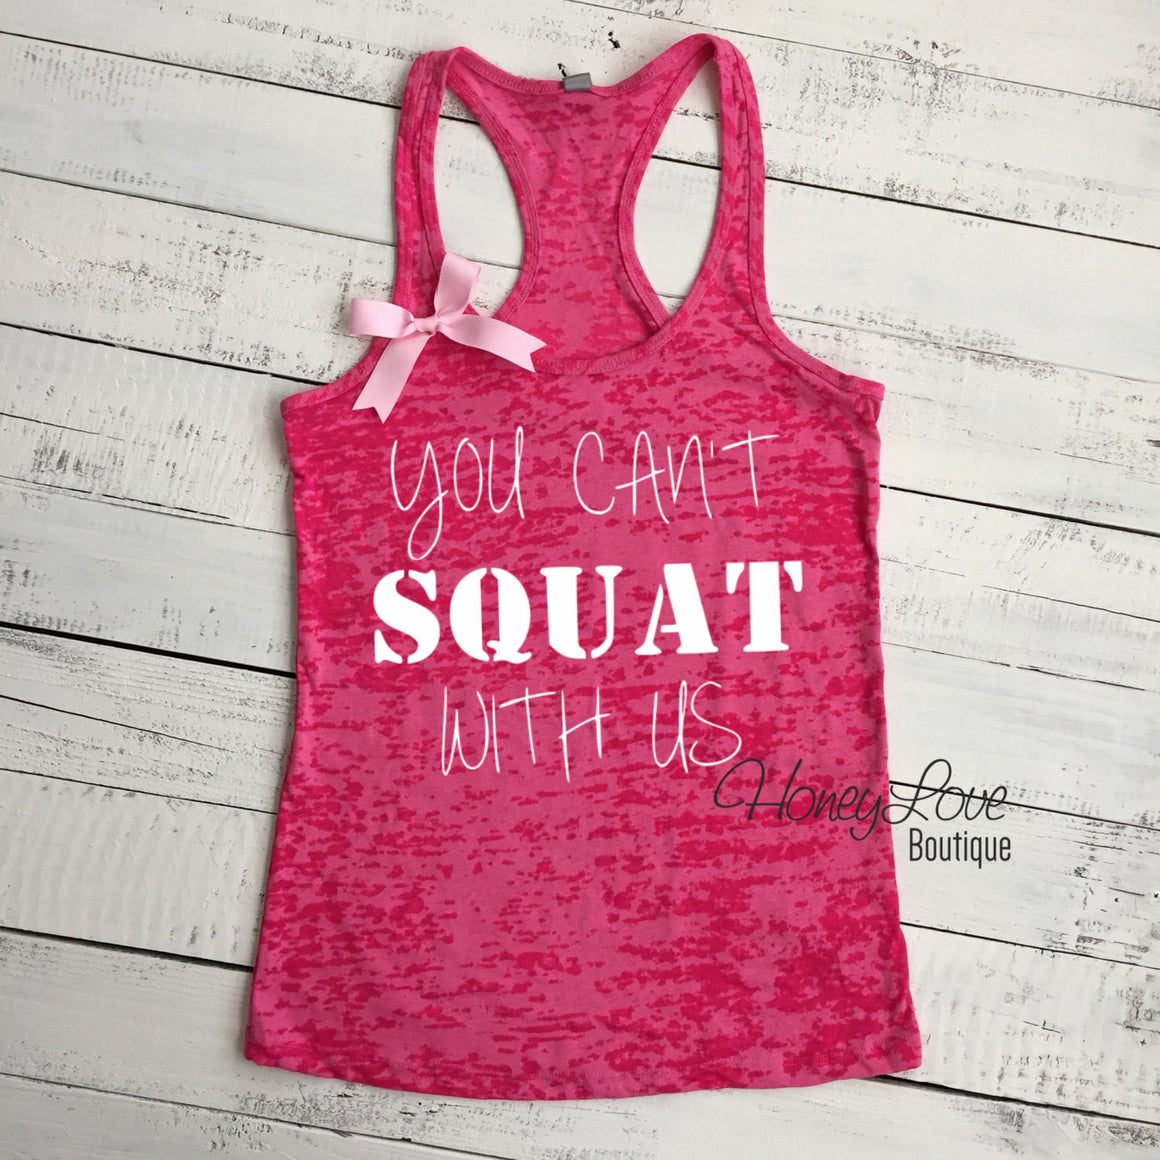 You can't SQUAT with us! - HoneyLoveBoutique